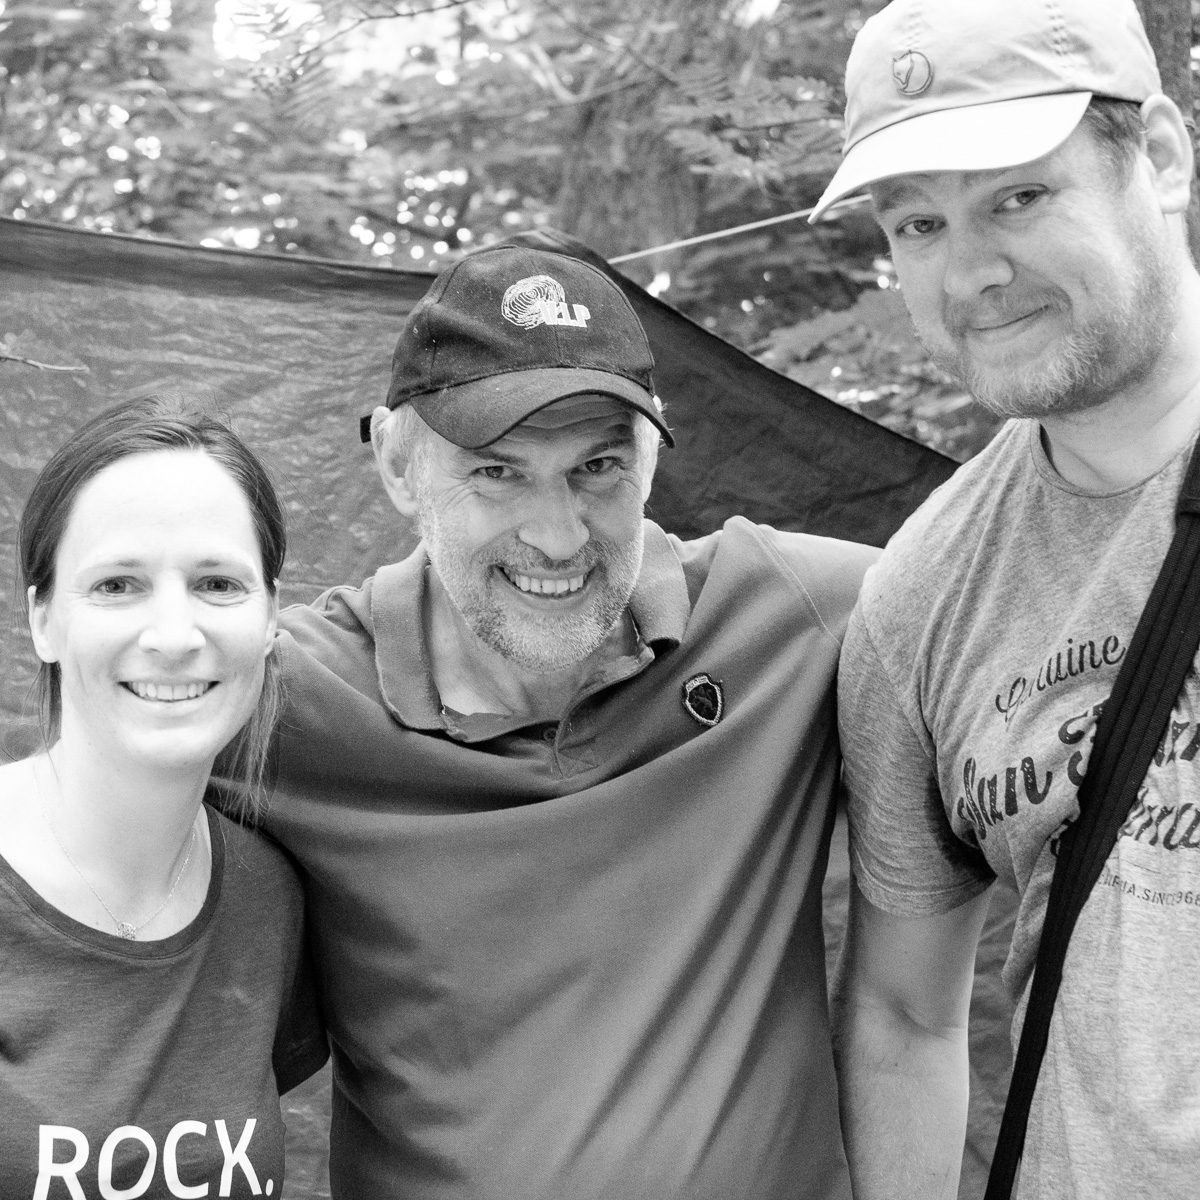 Julie, Patrick and myself, photographed by a refugee boy with my camera.